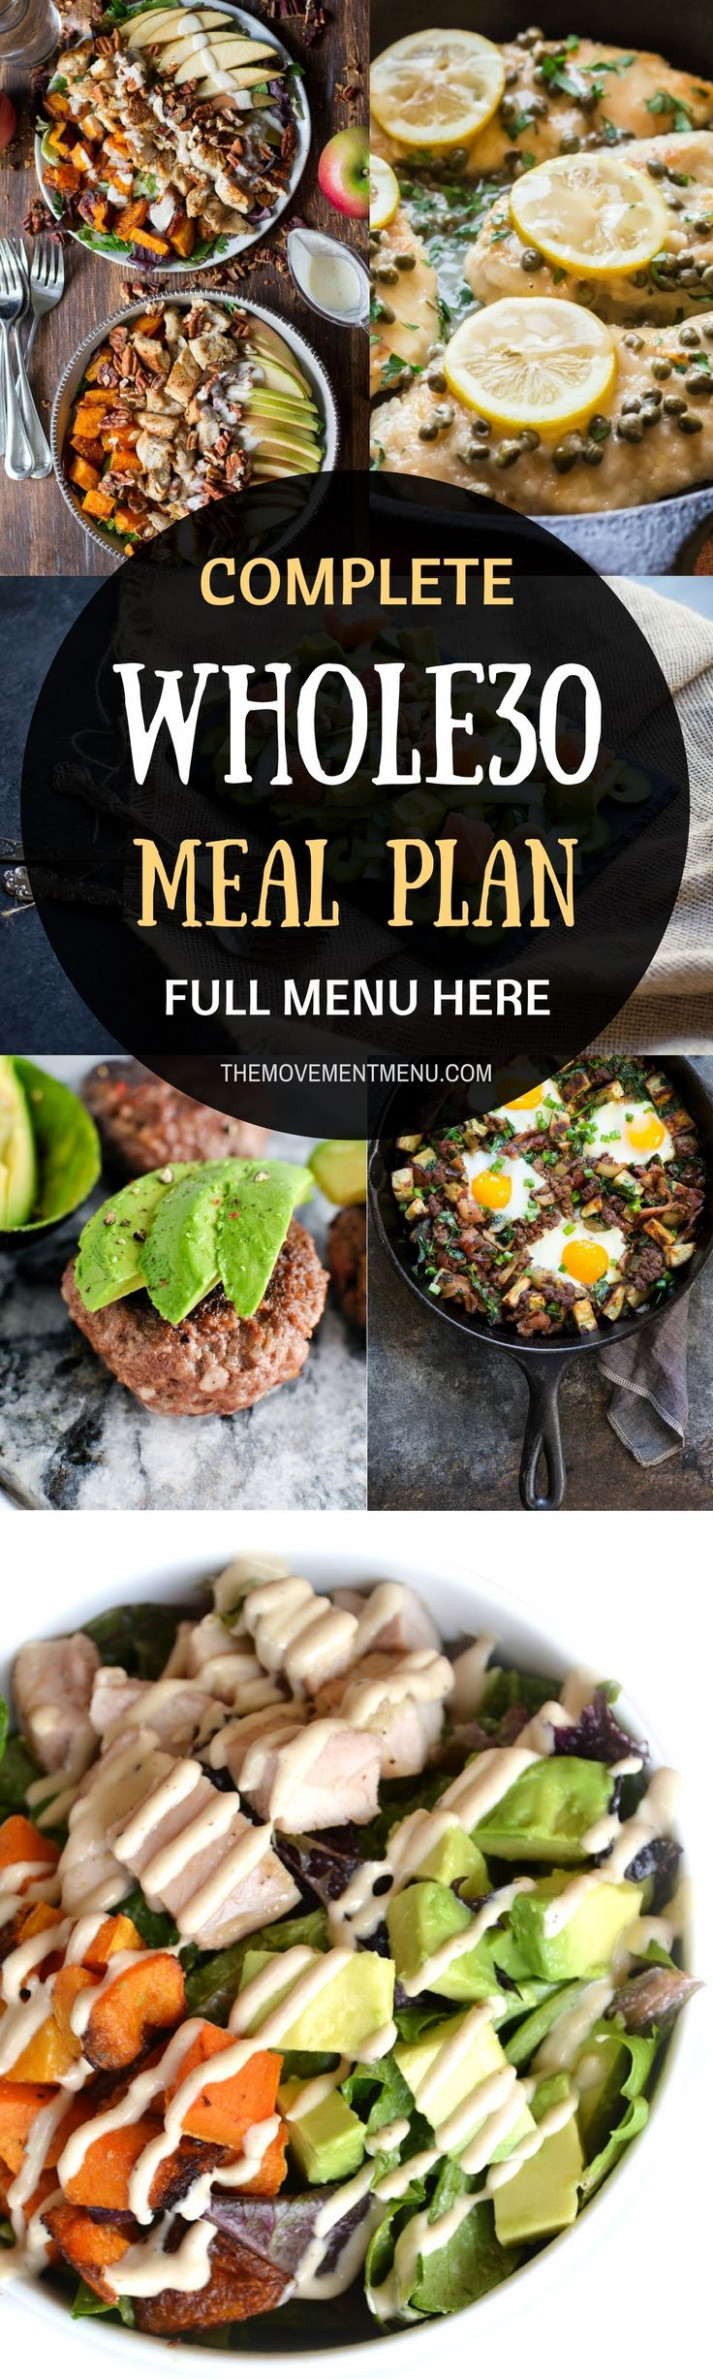 Best 25+ Whole 30 meal plan ideas on Pinterest | Whole30 ...